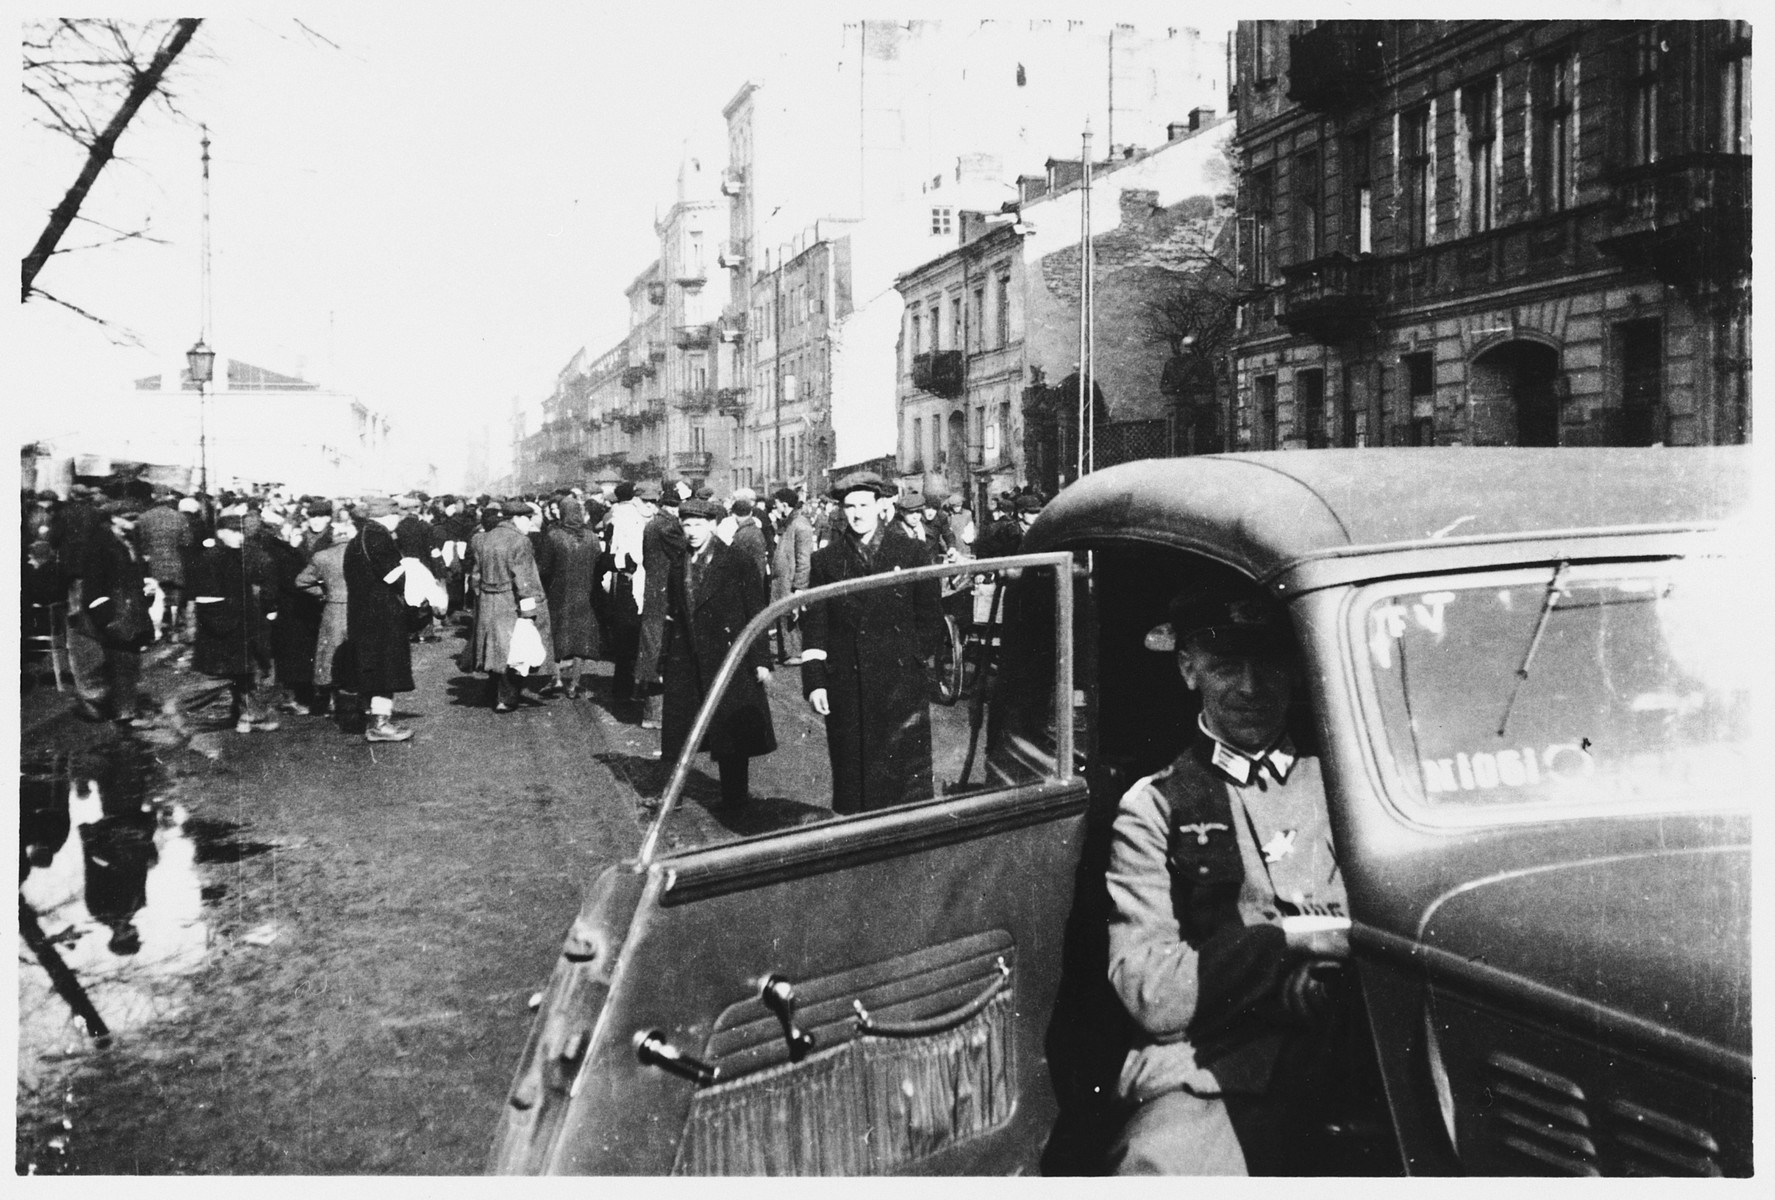 A German officer views the scene on a crowded street in the Warsaw ghetto from the open door of his automobile.